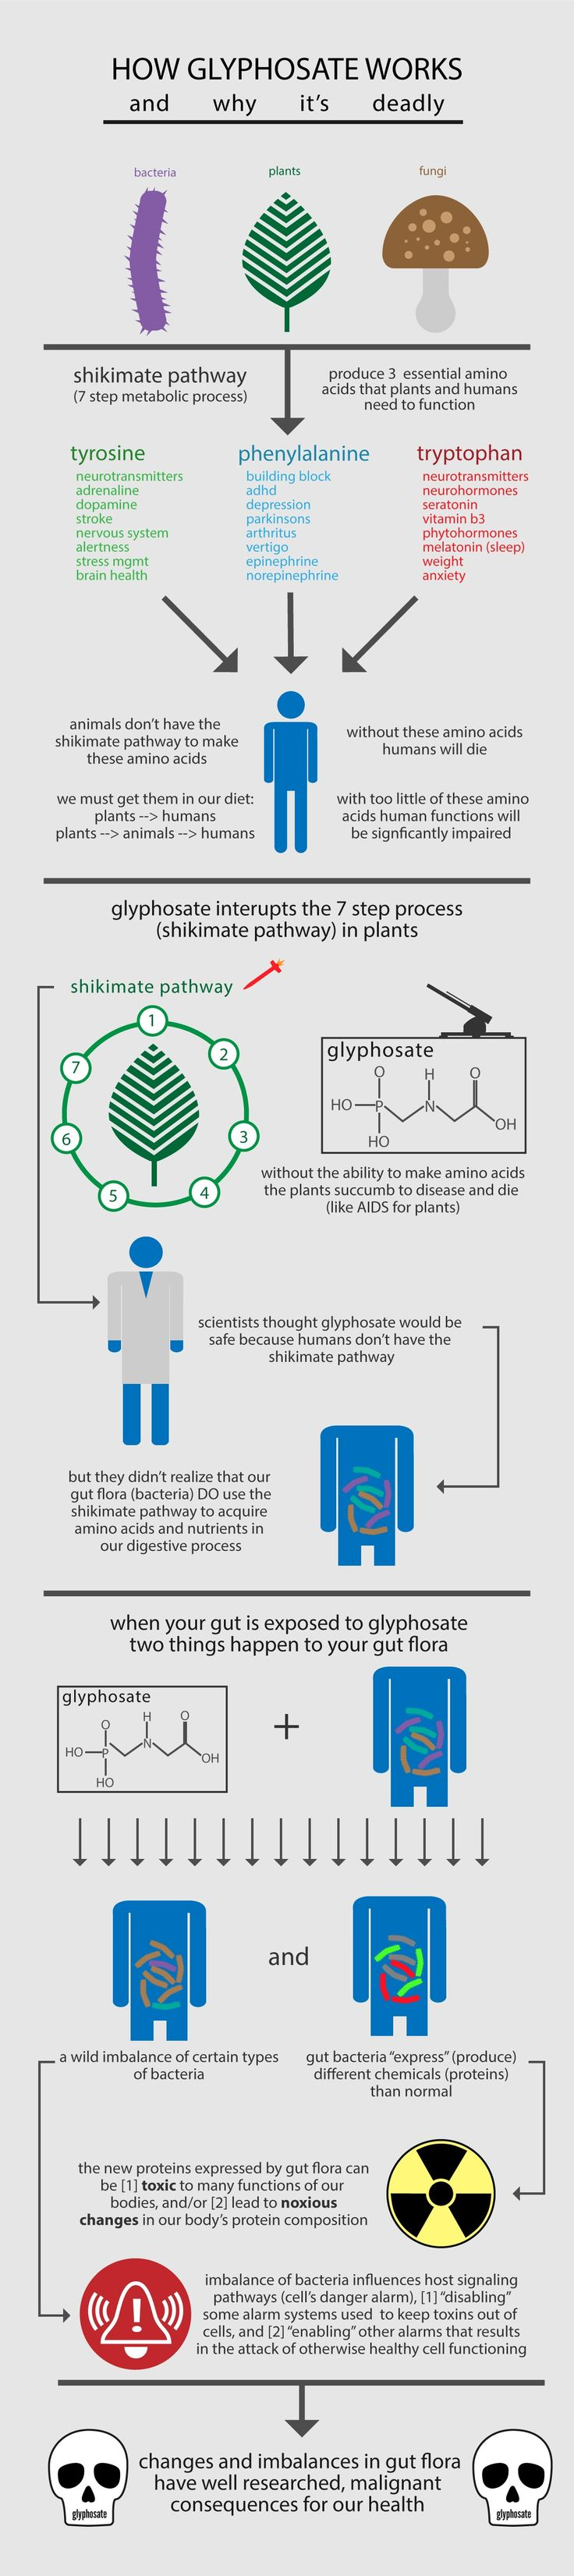 Graphic of how glyphosate works and why it's deadly